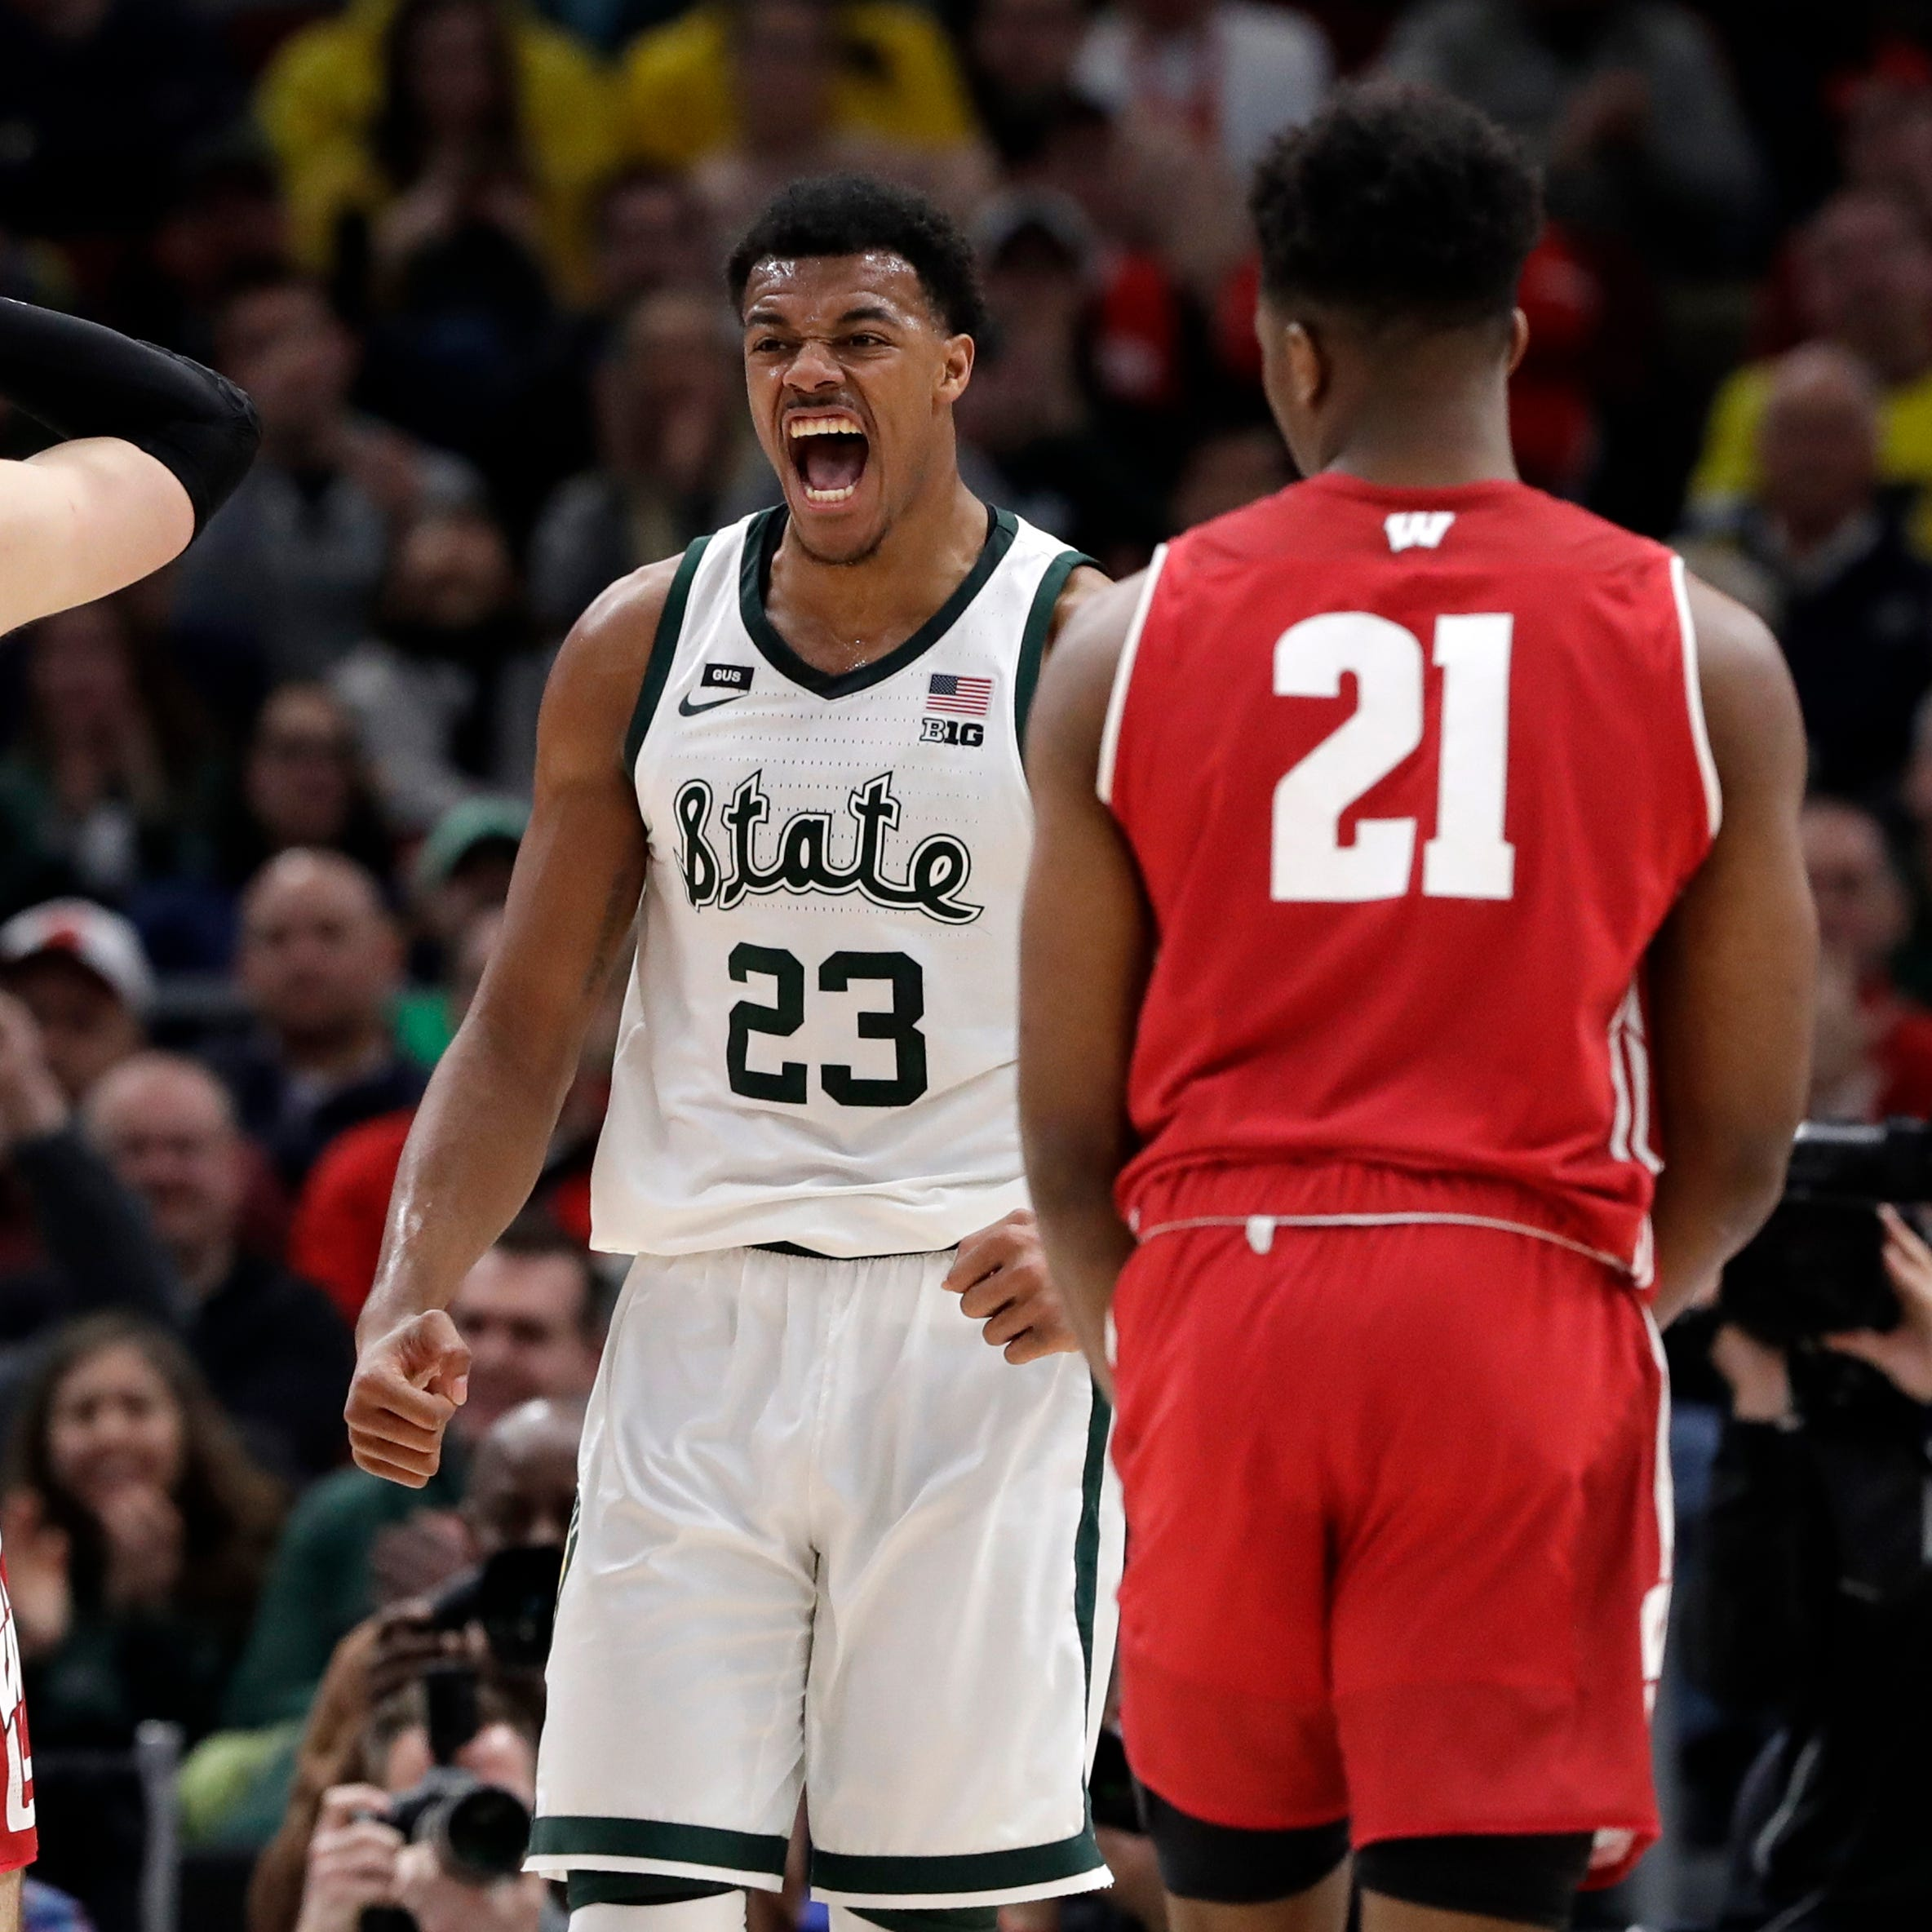 Michigan State 67: UW 55: Spartans start quickly and keep Badgers at bay all game